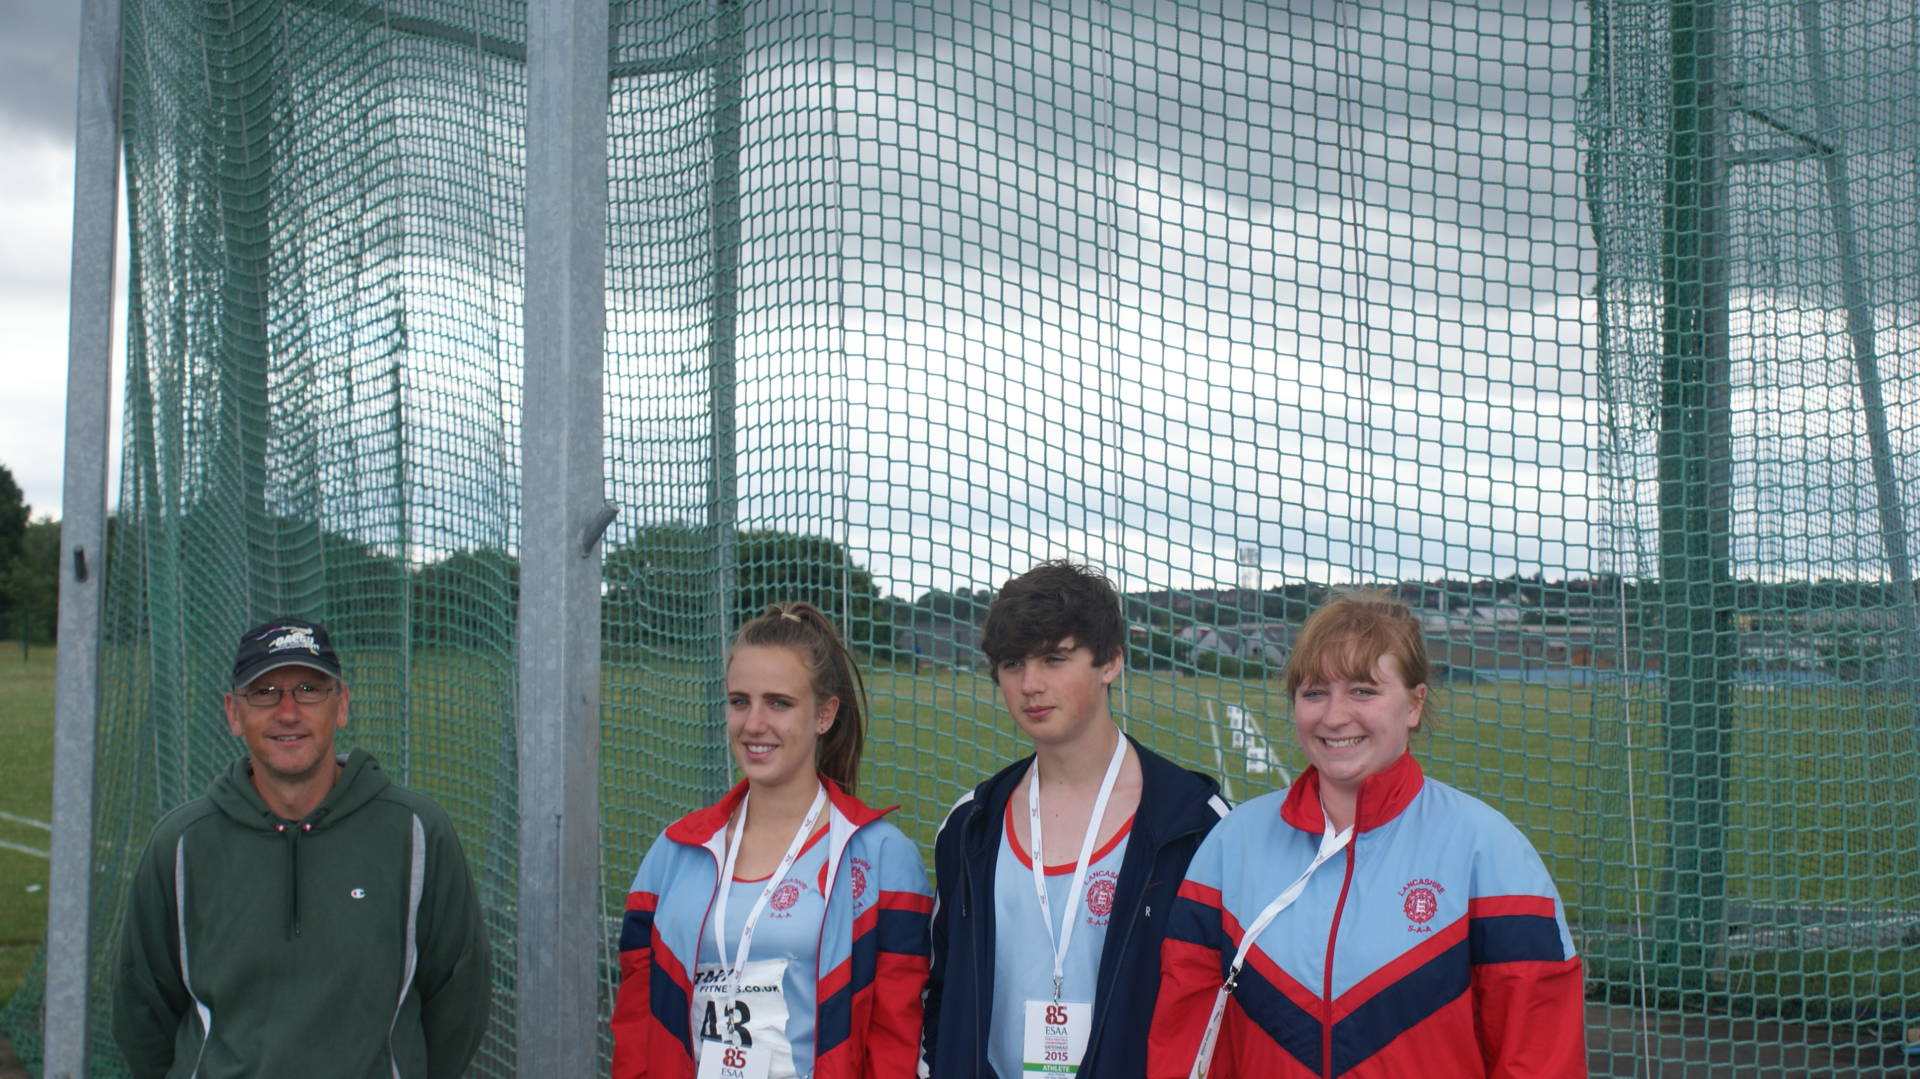 Harriers Young Athletes do them themselves proud at Englaish Schools Championships